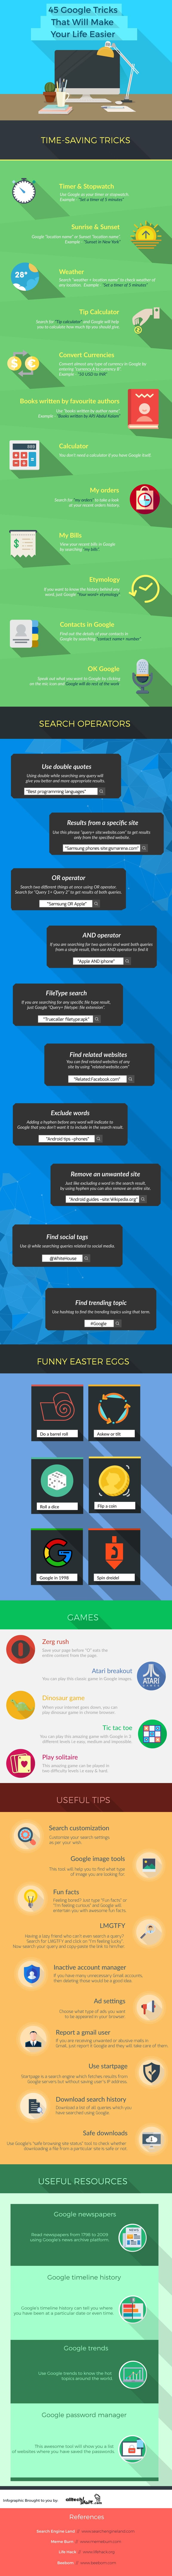 Infographic outlines Google search tips and tricks